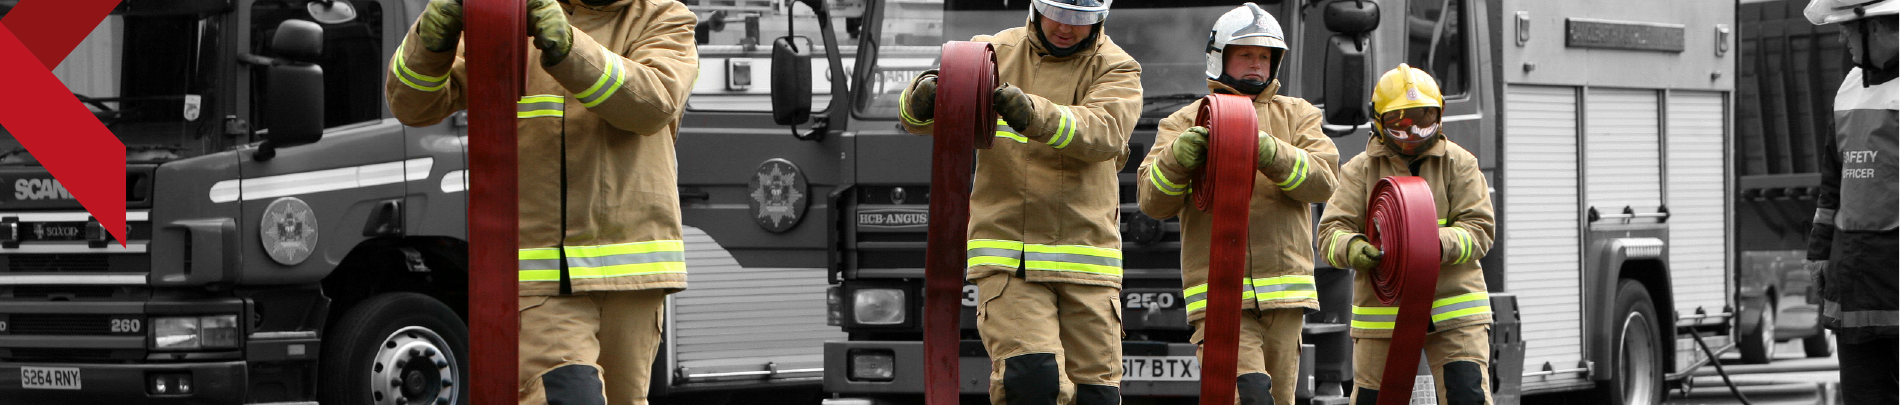 Firefighters taking part in a training excercise